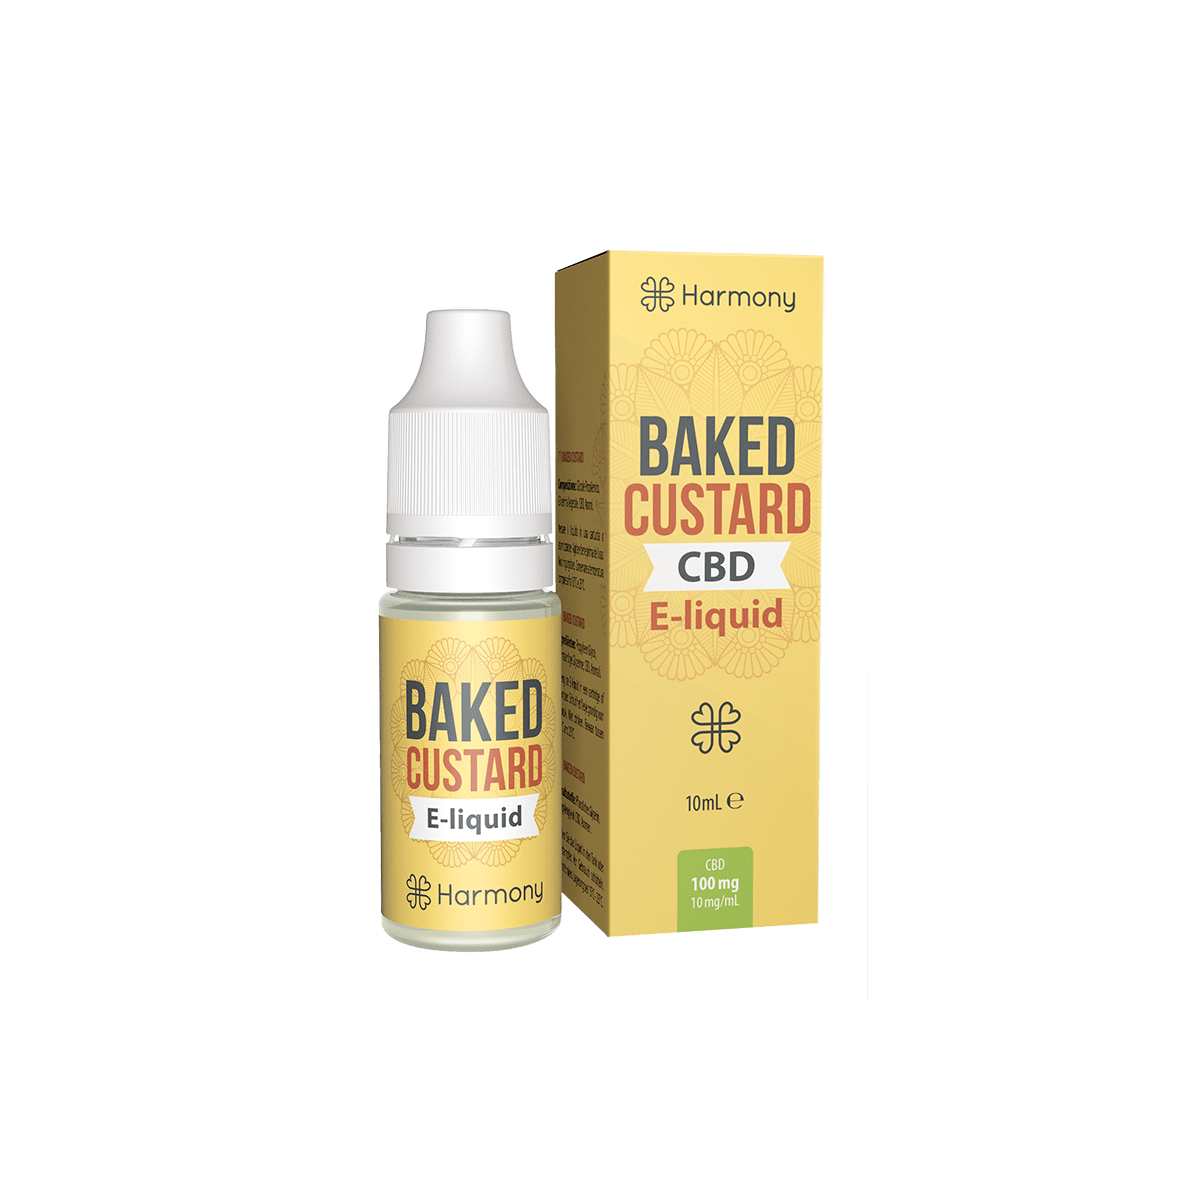 CBD Liquid | HARMONY - Baked Custard | Menge 10 ml - 600 mg